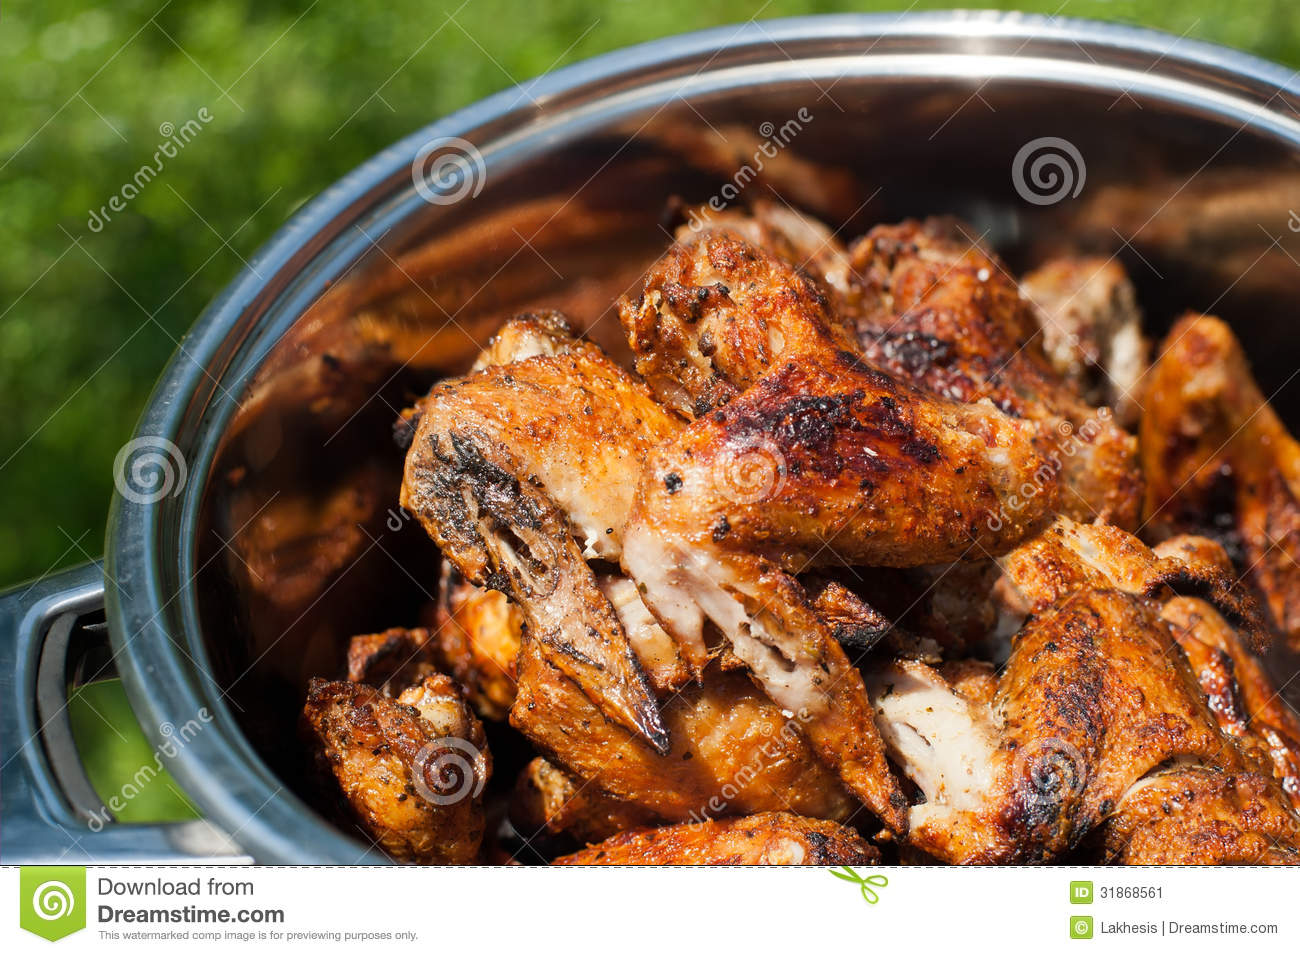 how to cook grill chicken wings